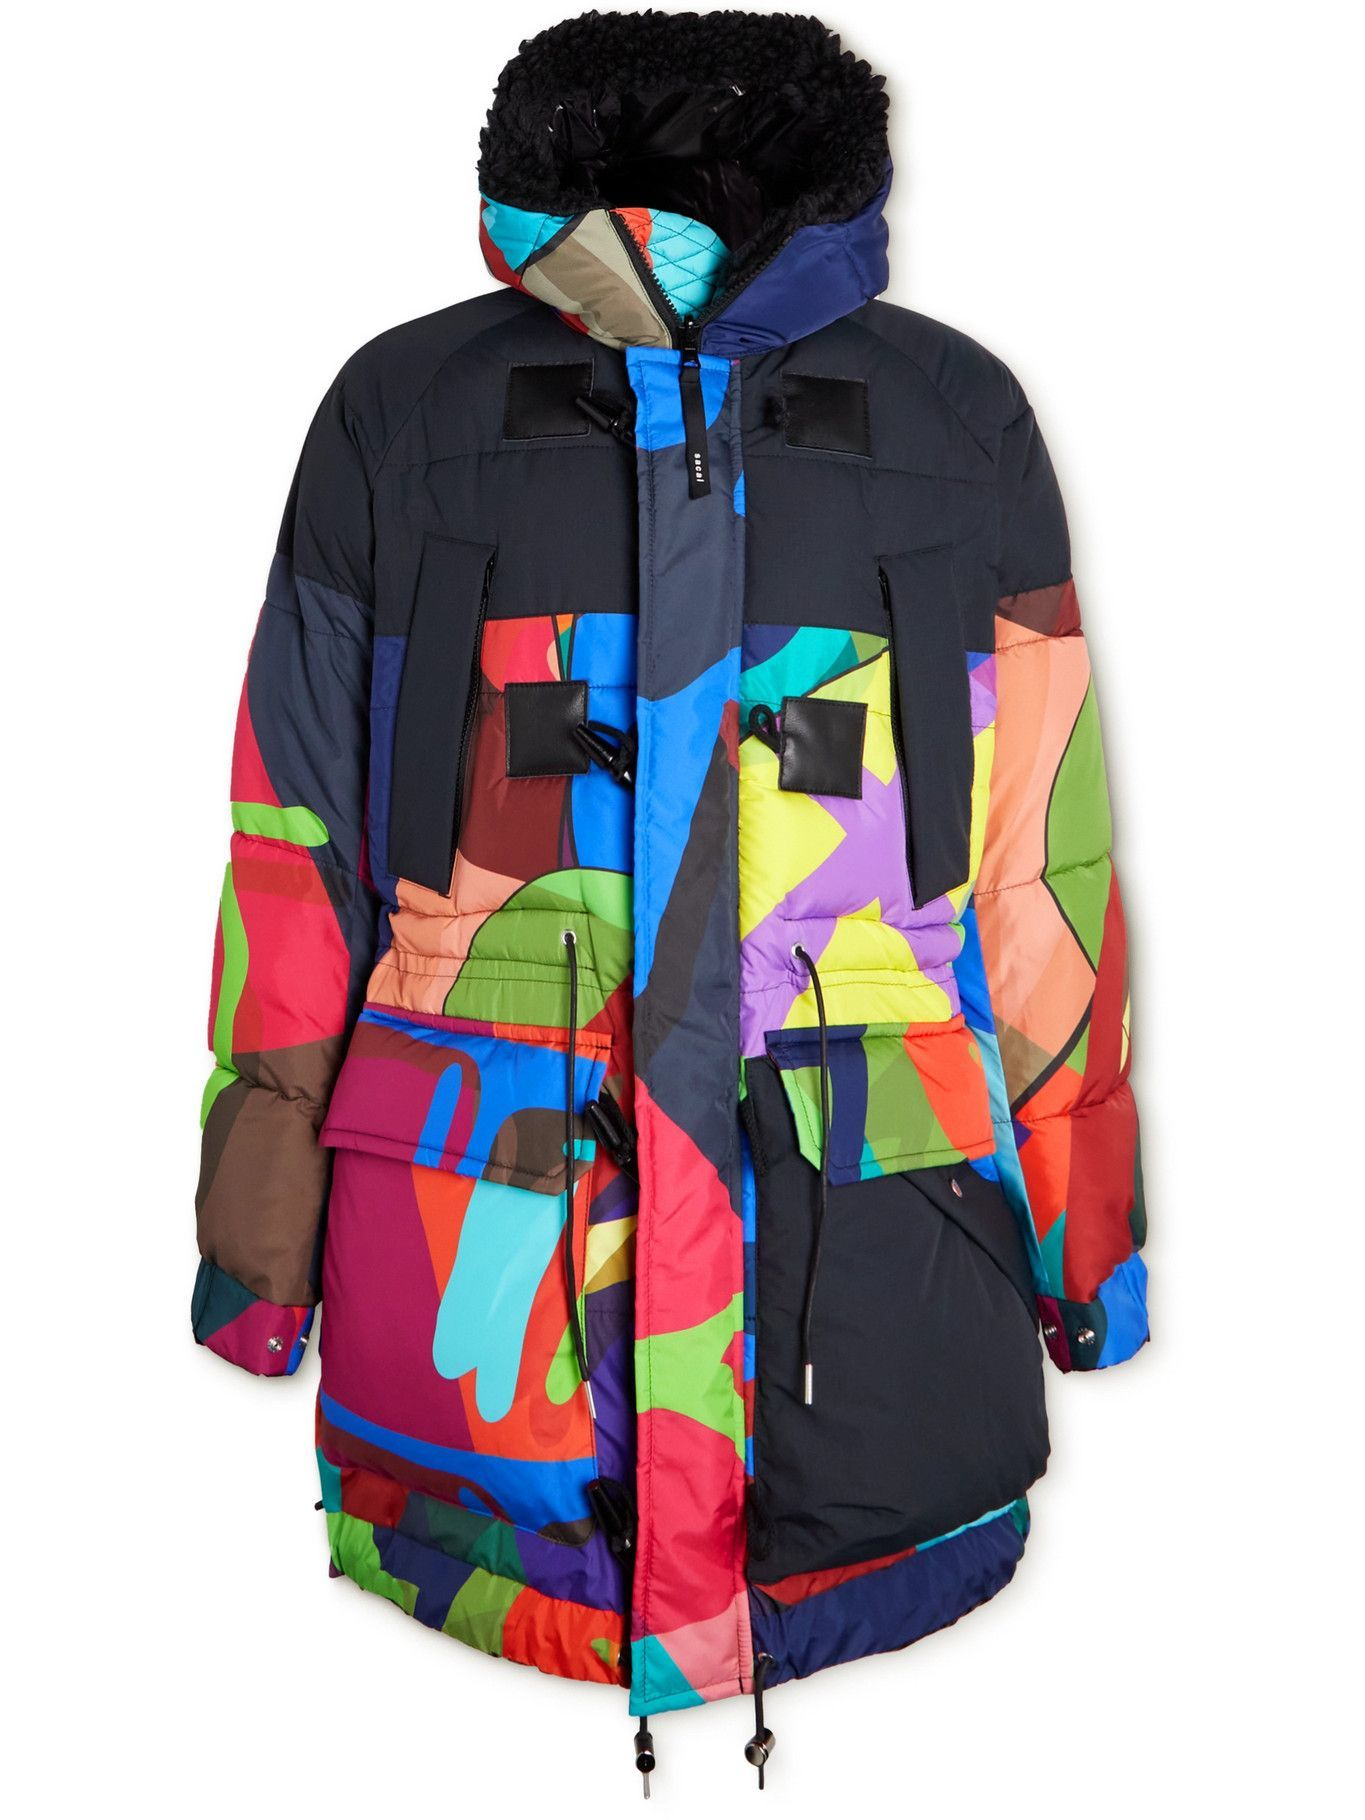 Sacai - KAWS Oversized Faux Fur-Trimmed Quilted Printed Shell Jacket - Multi